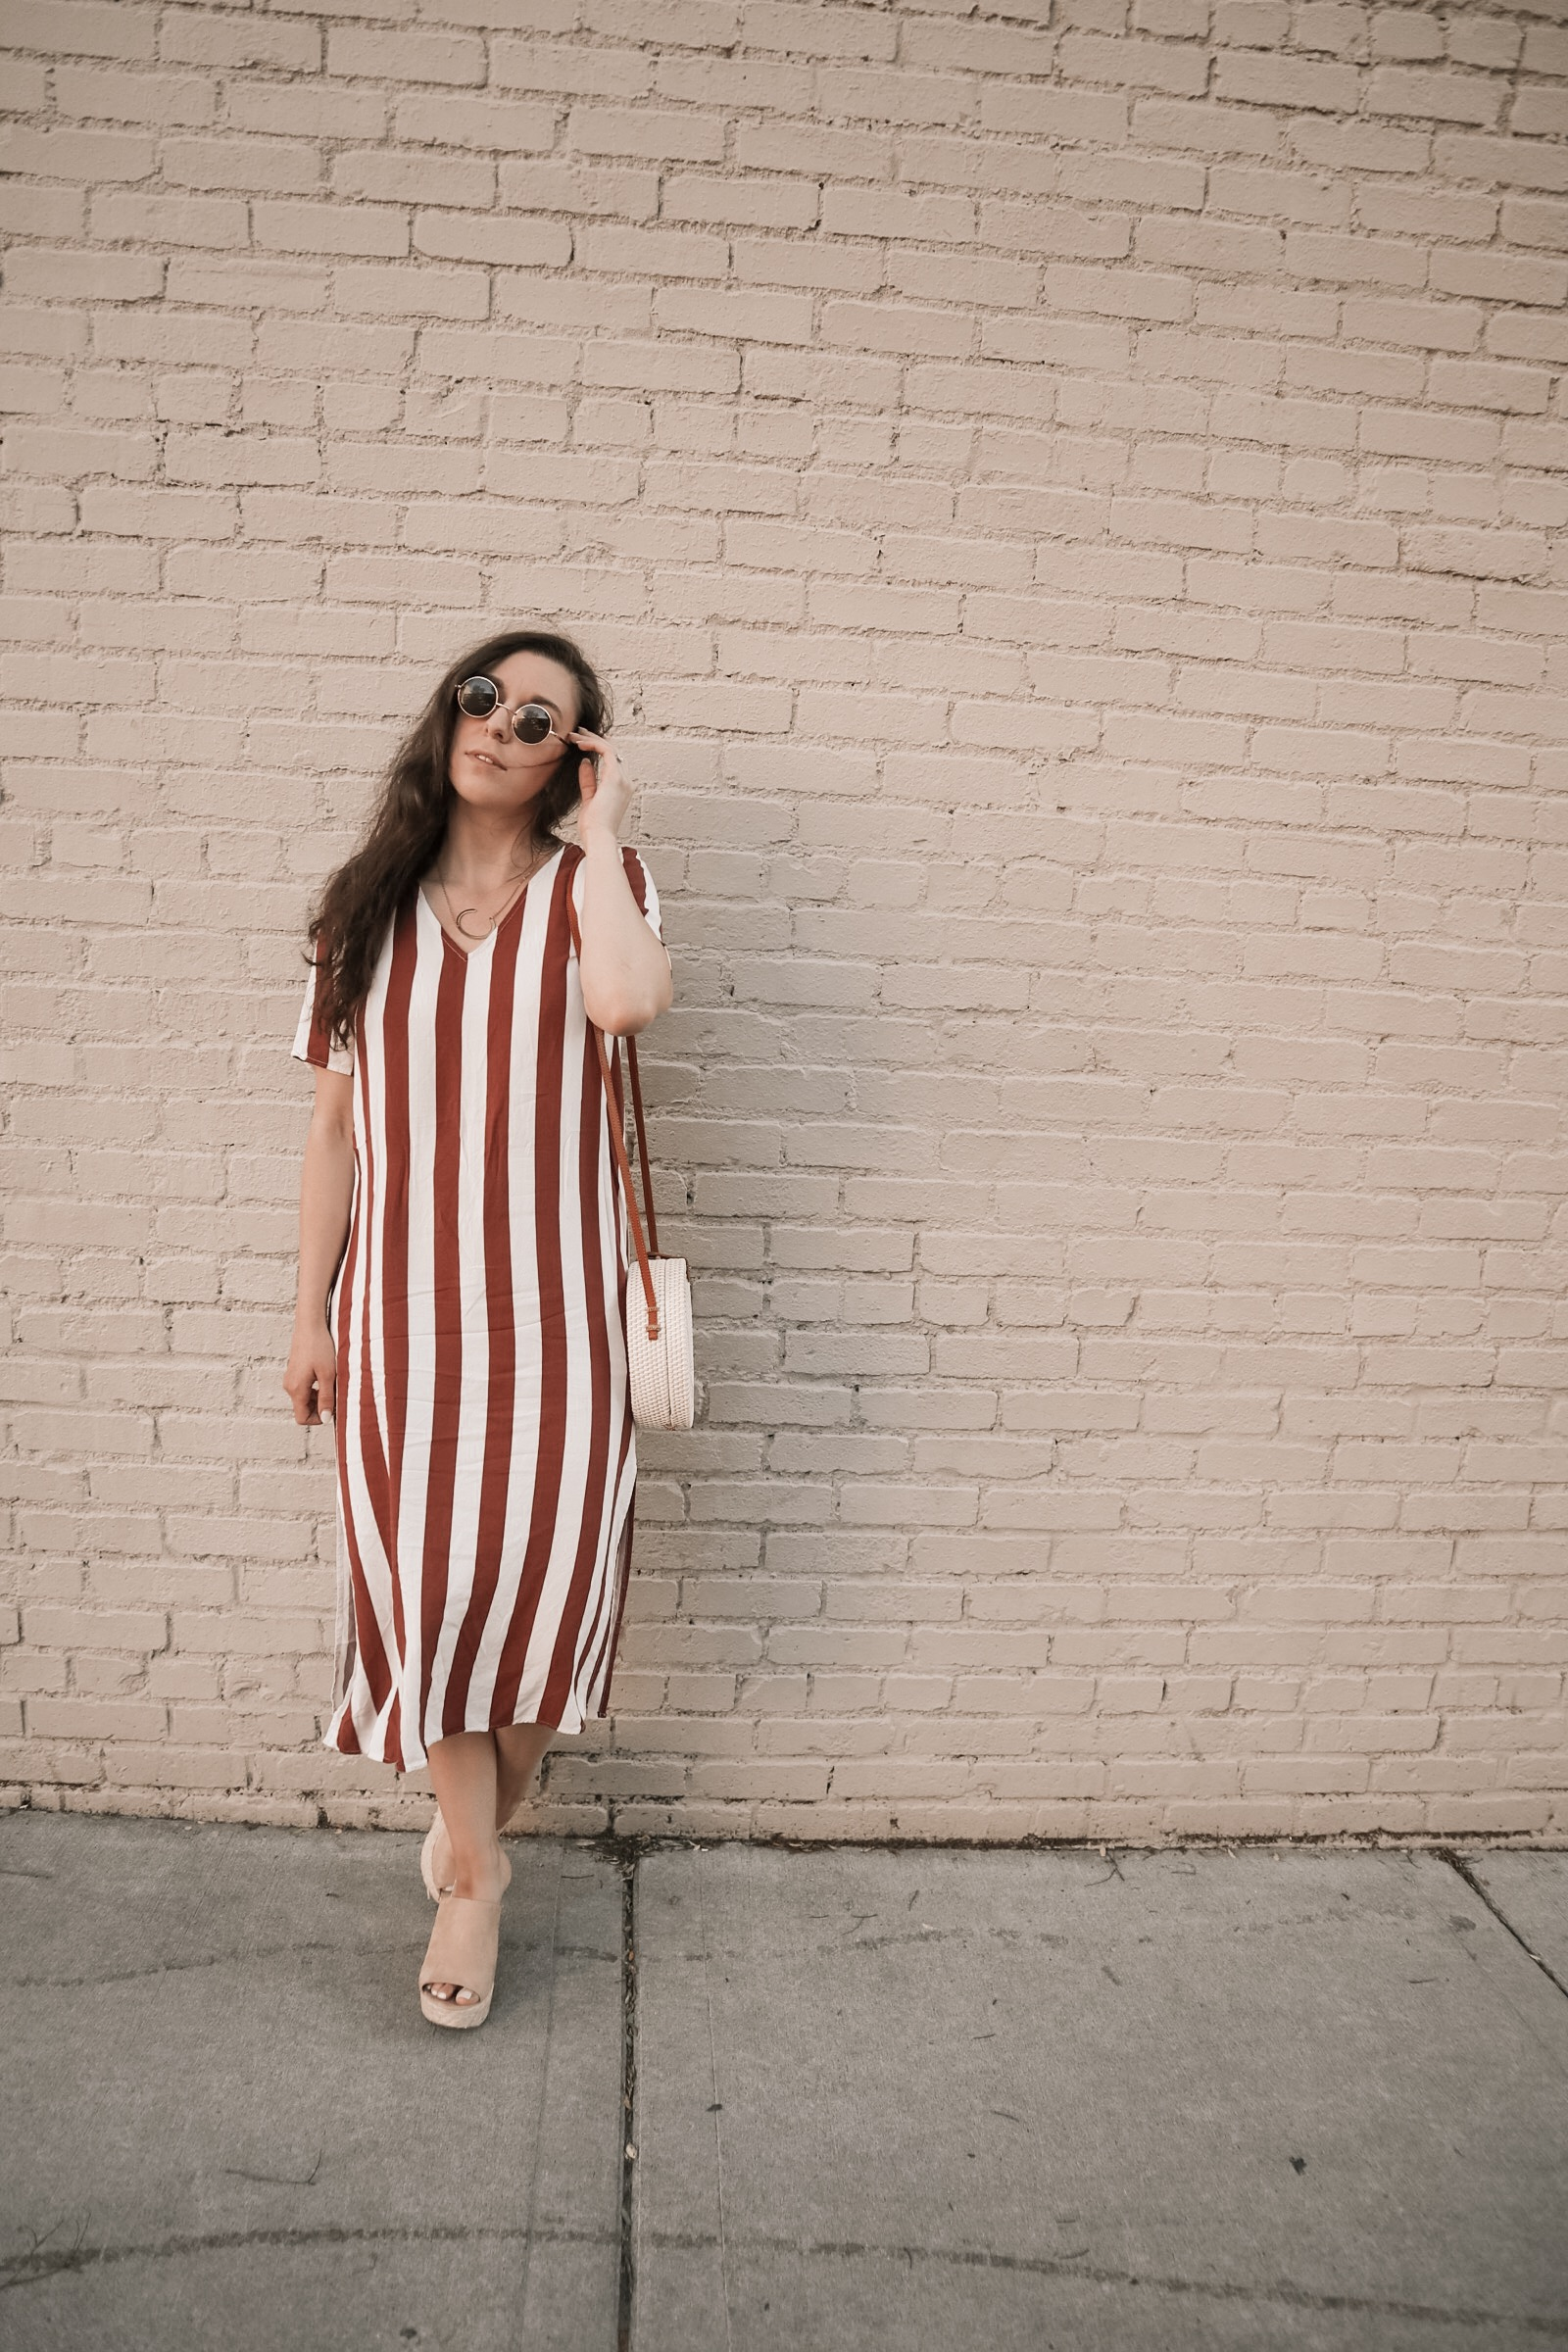 Versatile-striped-dress-beach1